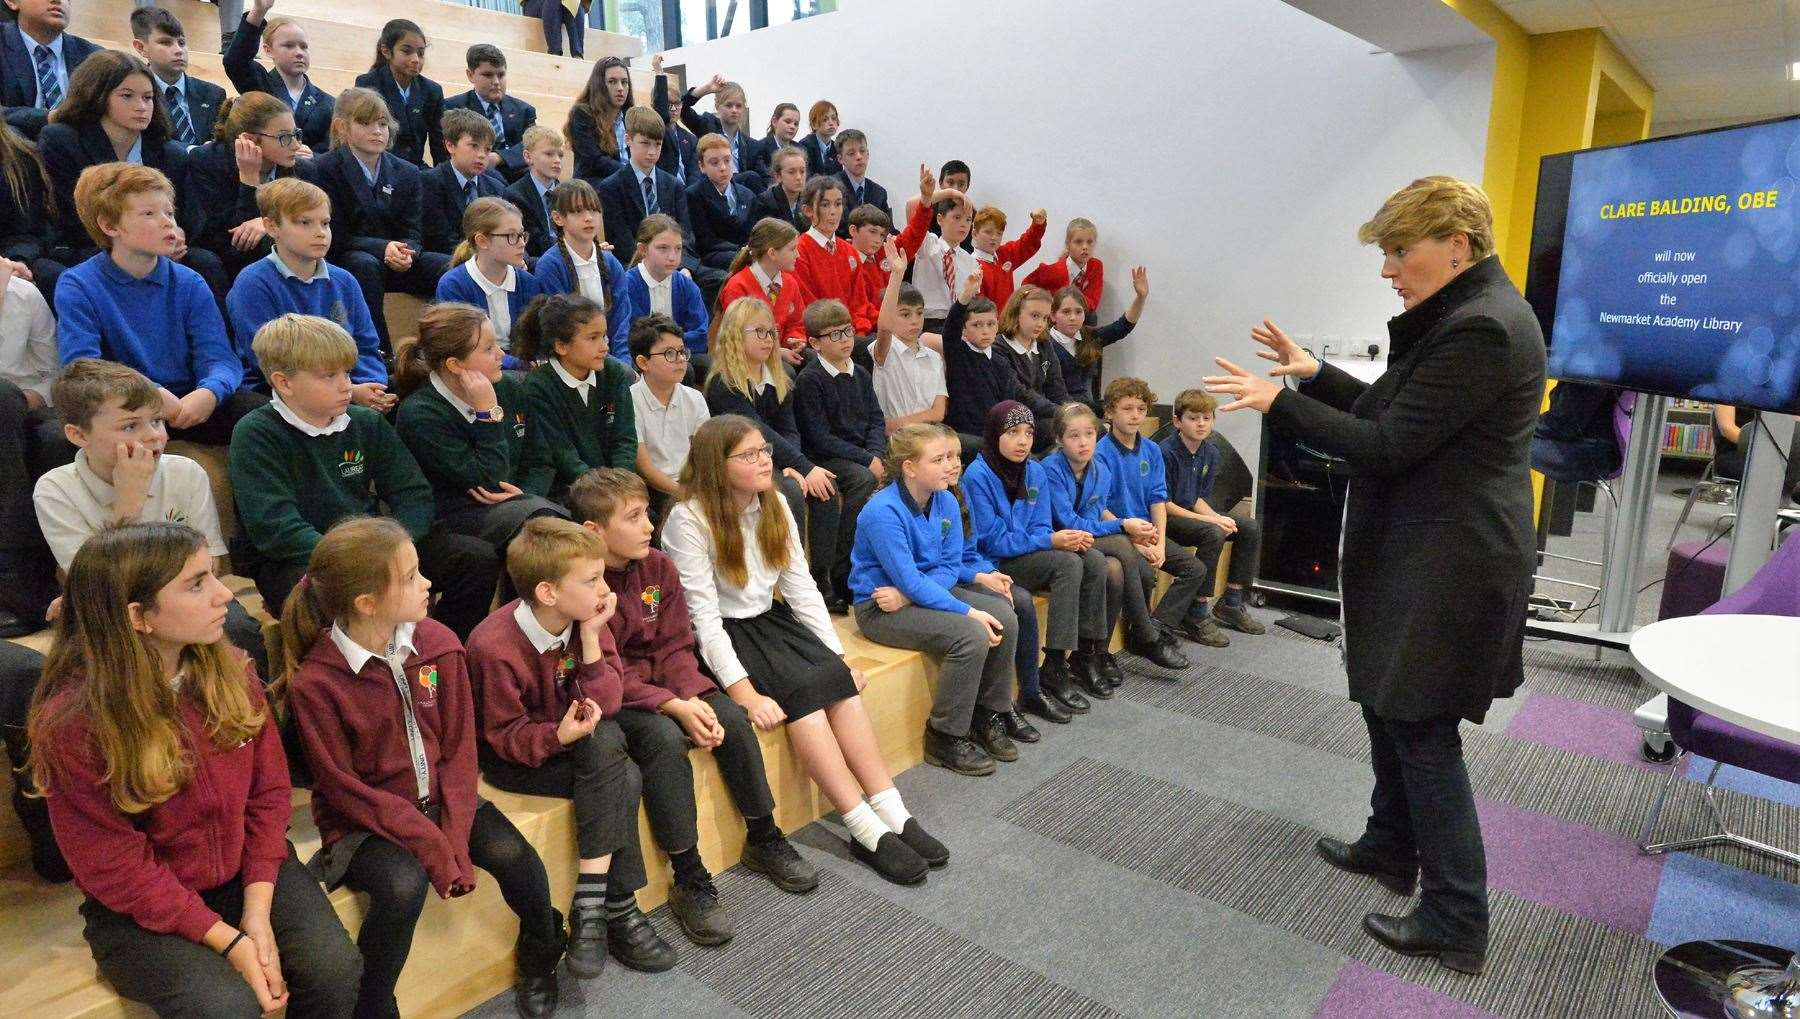 Clare Balding opens Newmarket Academy's state-of-the art new library (24980824)